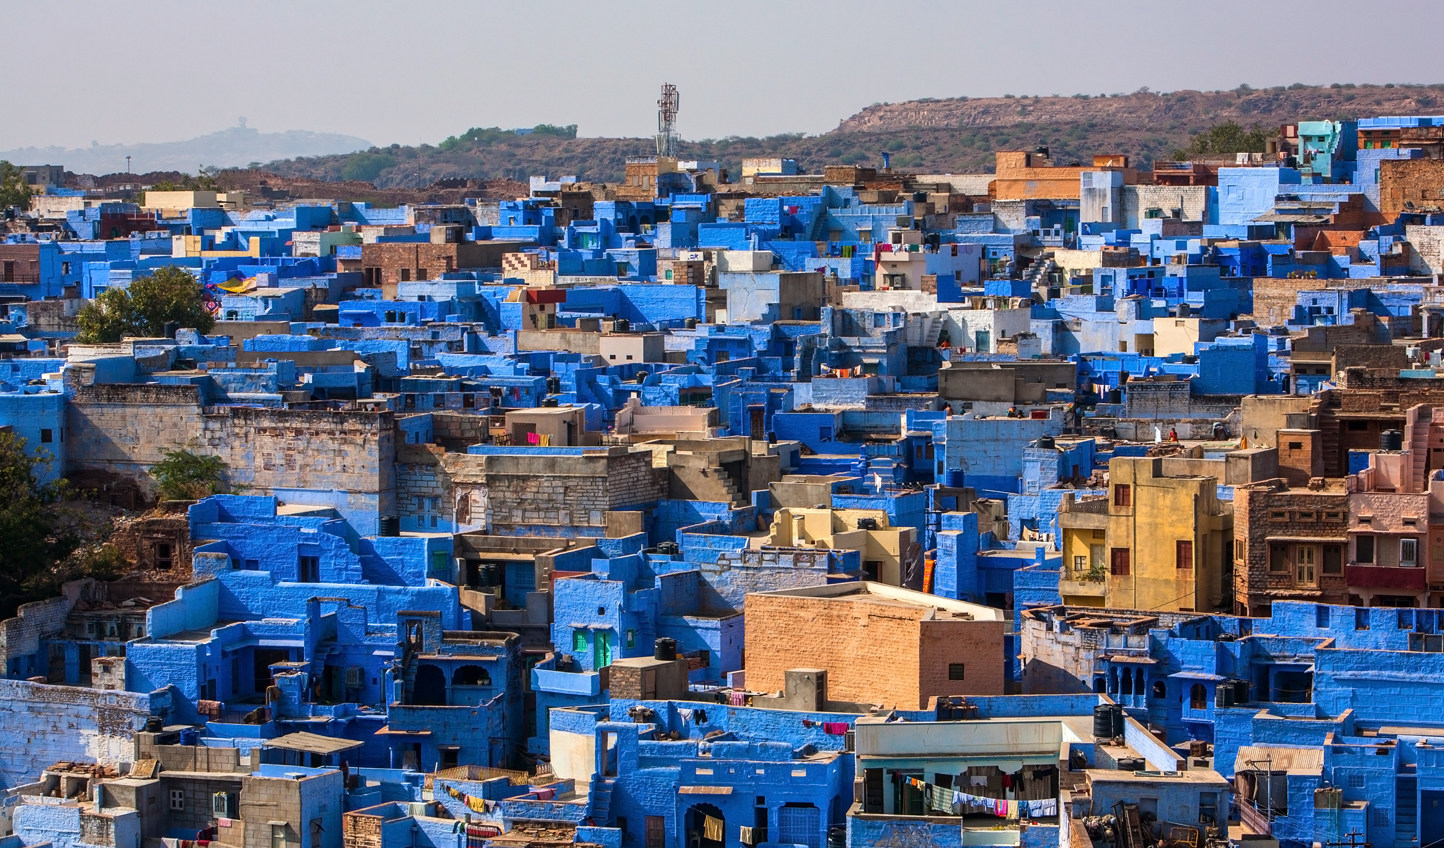 Discover why Jodhpur is known as 'the Blue City'